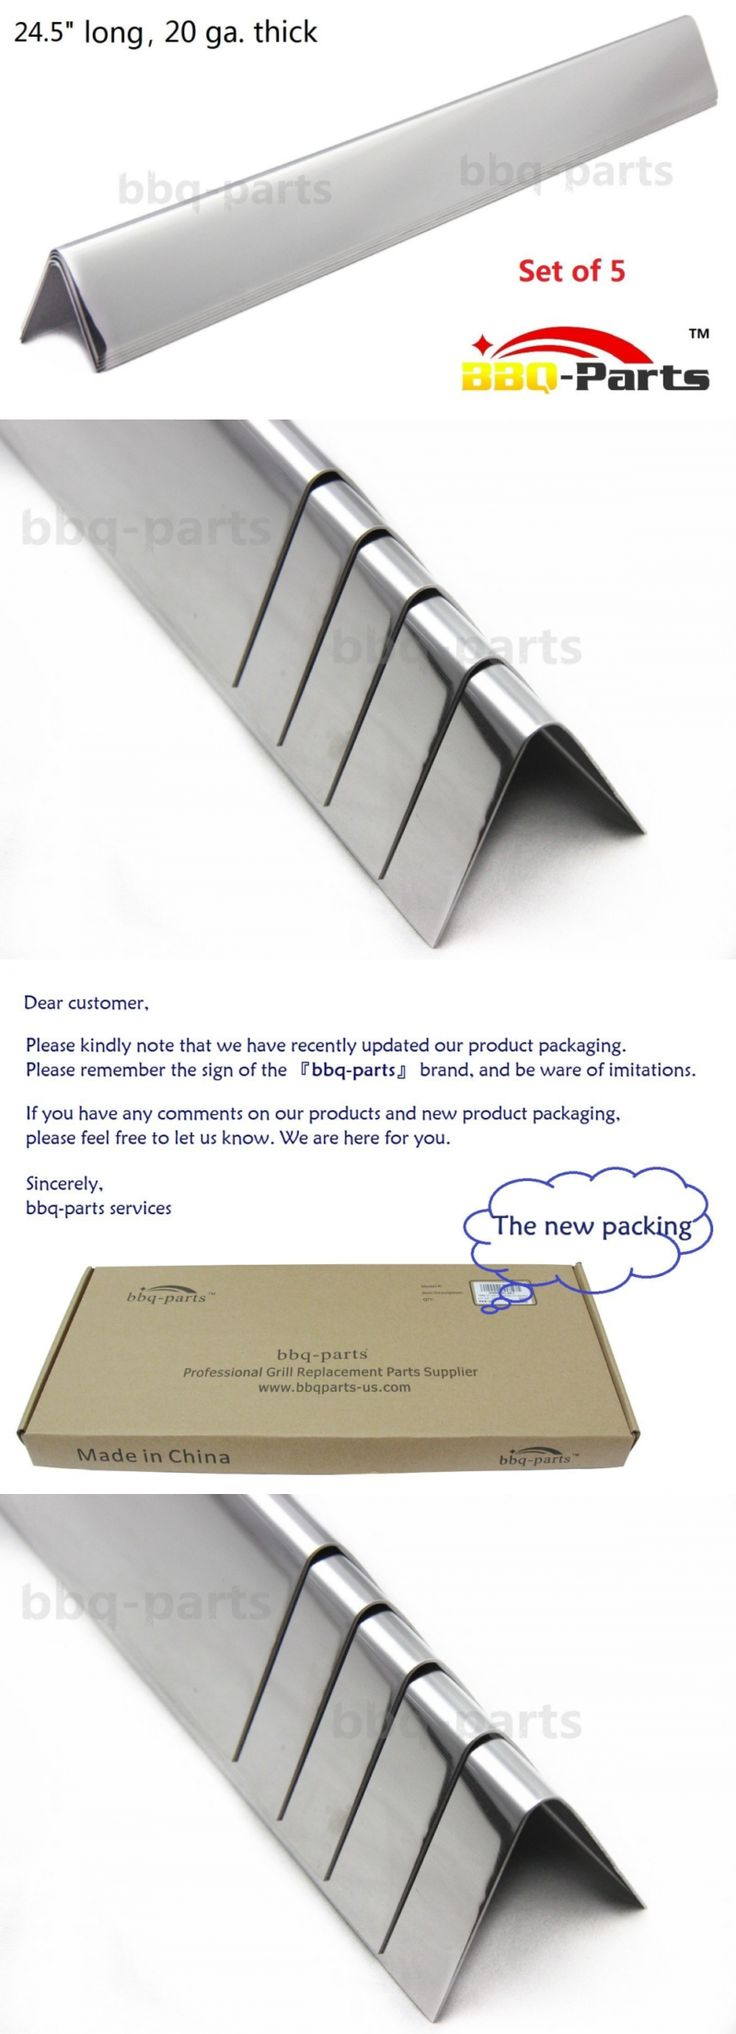 BBQ and Grill Replacement Parts 177018: Stainless Steel Flavorizer Bars Weber Grill Gas Genesis Heat Plate Replace 5Pcs -> BUY IT NOW ONLY: $33.09 on eBay!